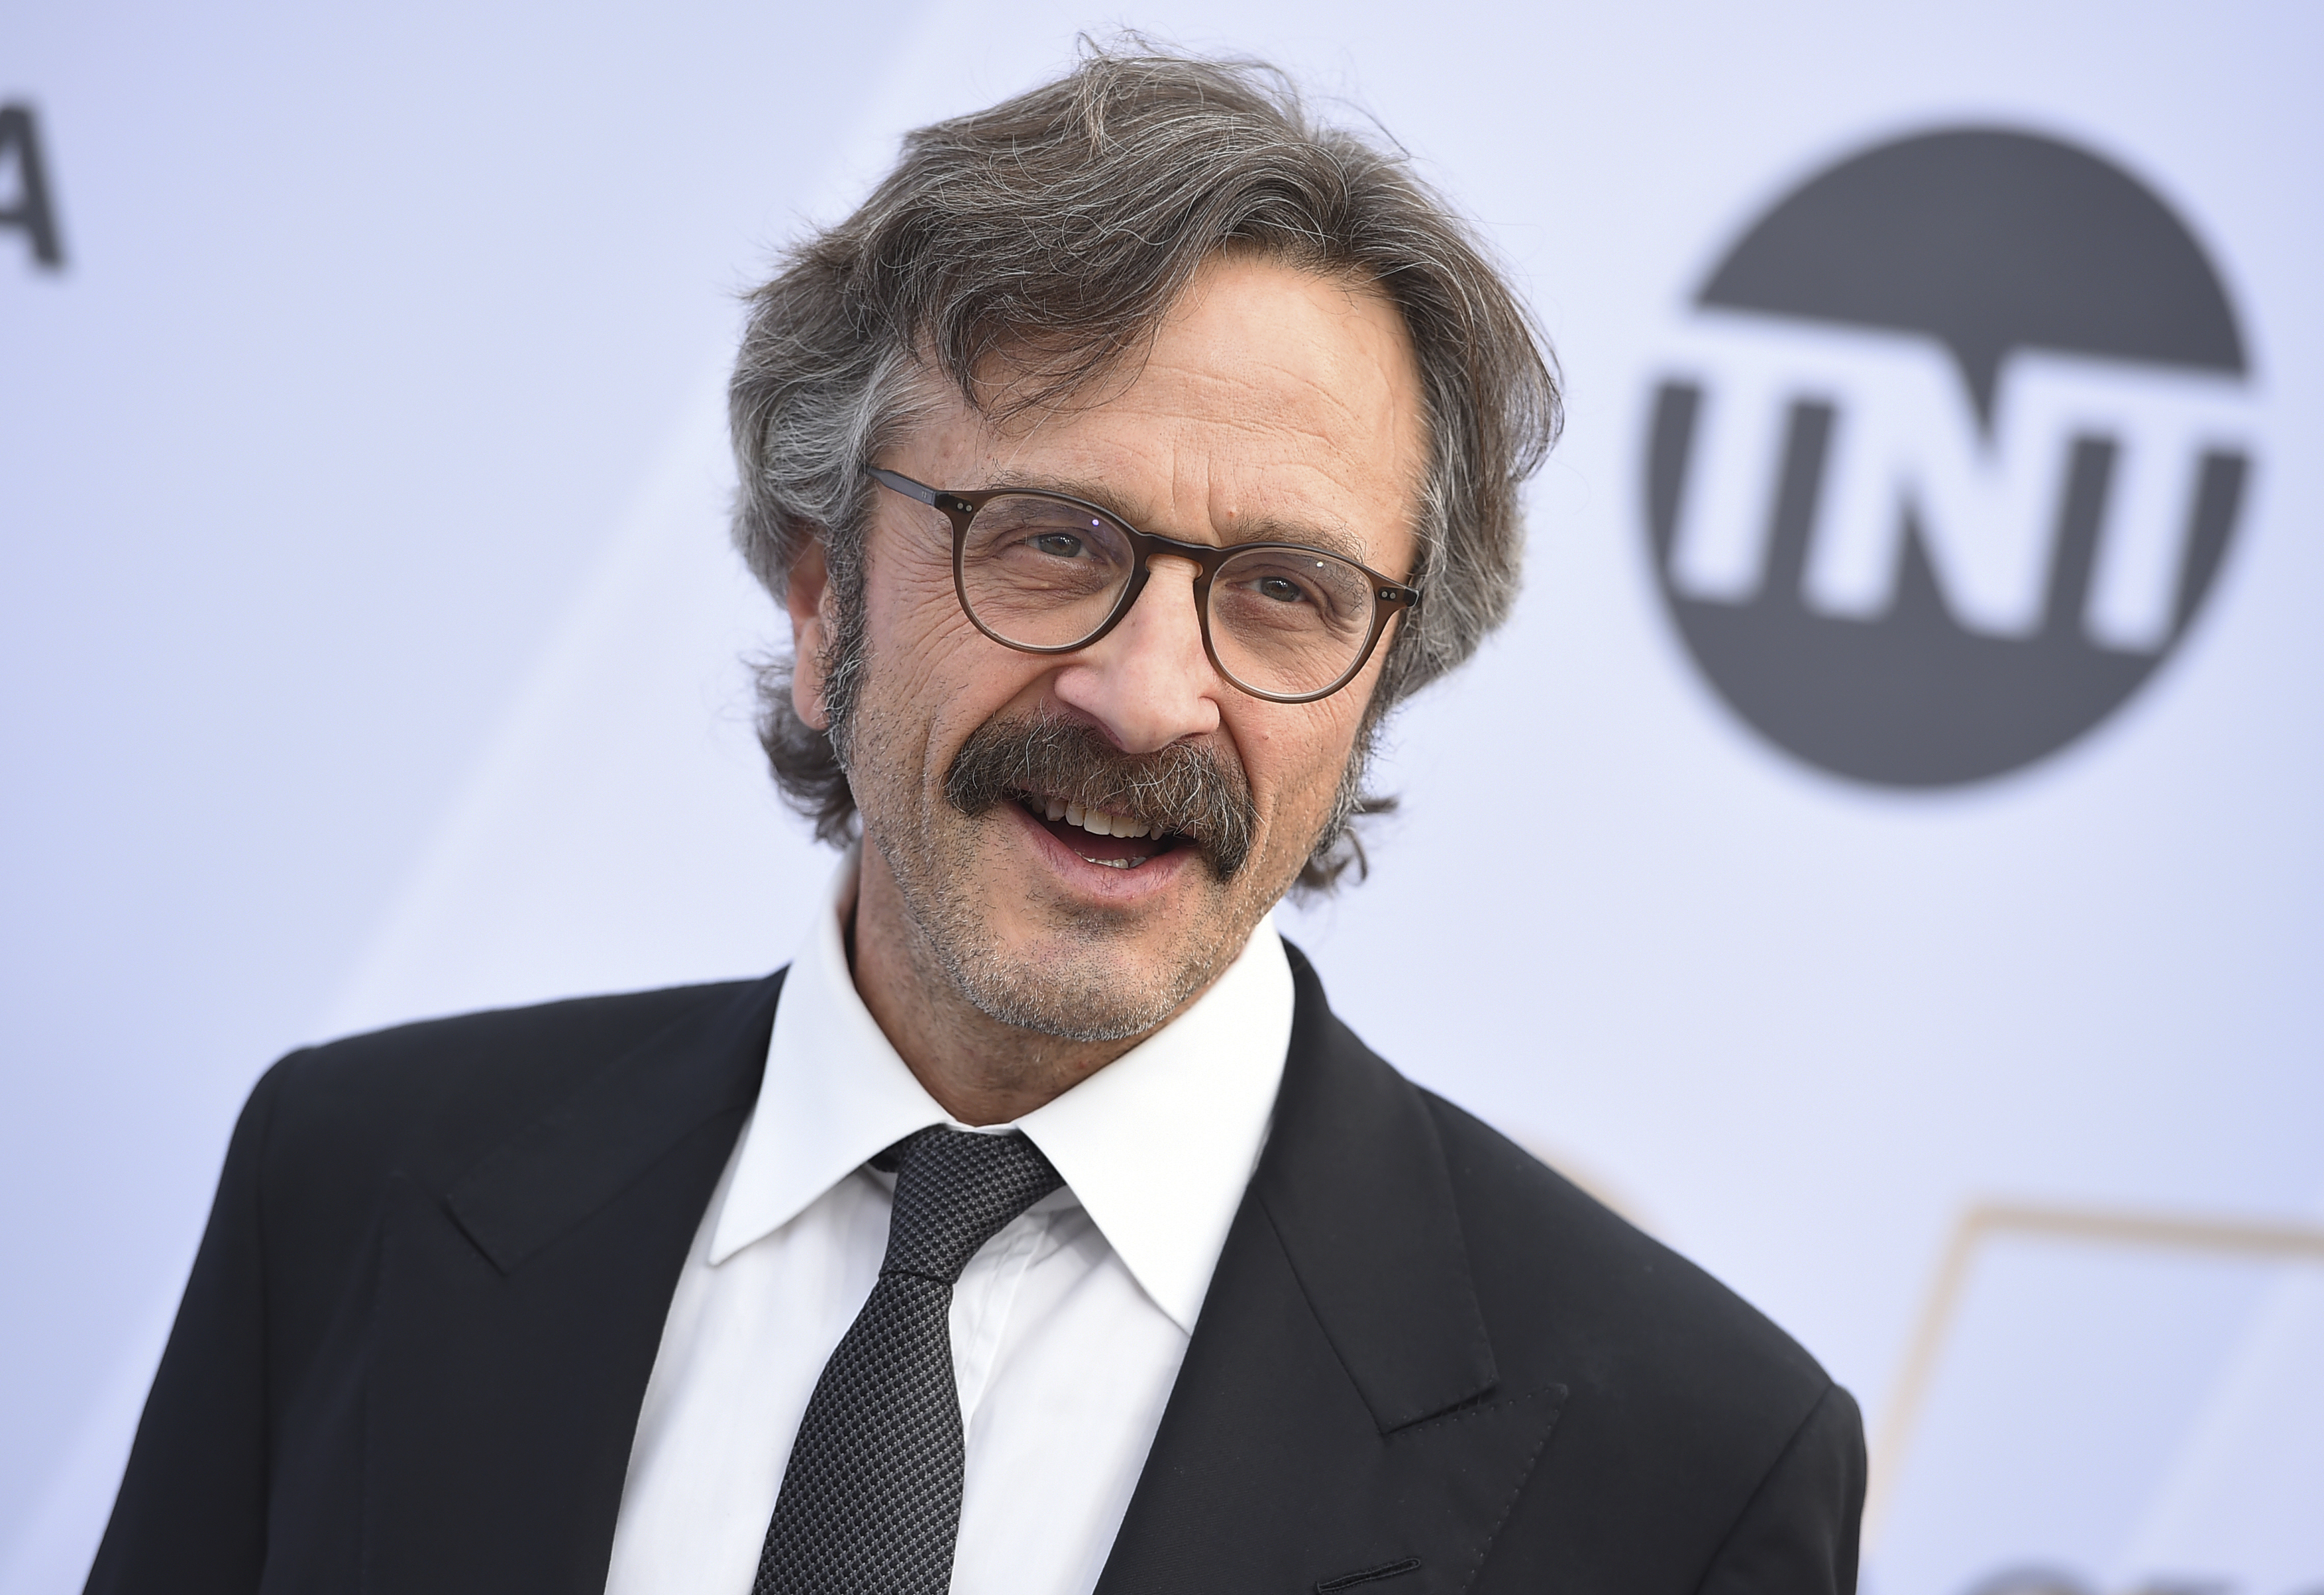 Marc Maron arrives at the 25th annual Screen Actors Guild Awards at the Shrine Auditorium & Expo Hall on Sunday, Jan. 27, 2019, in Los Angeles. (Photo by Jordan Strauss/Invision/AP)